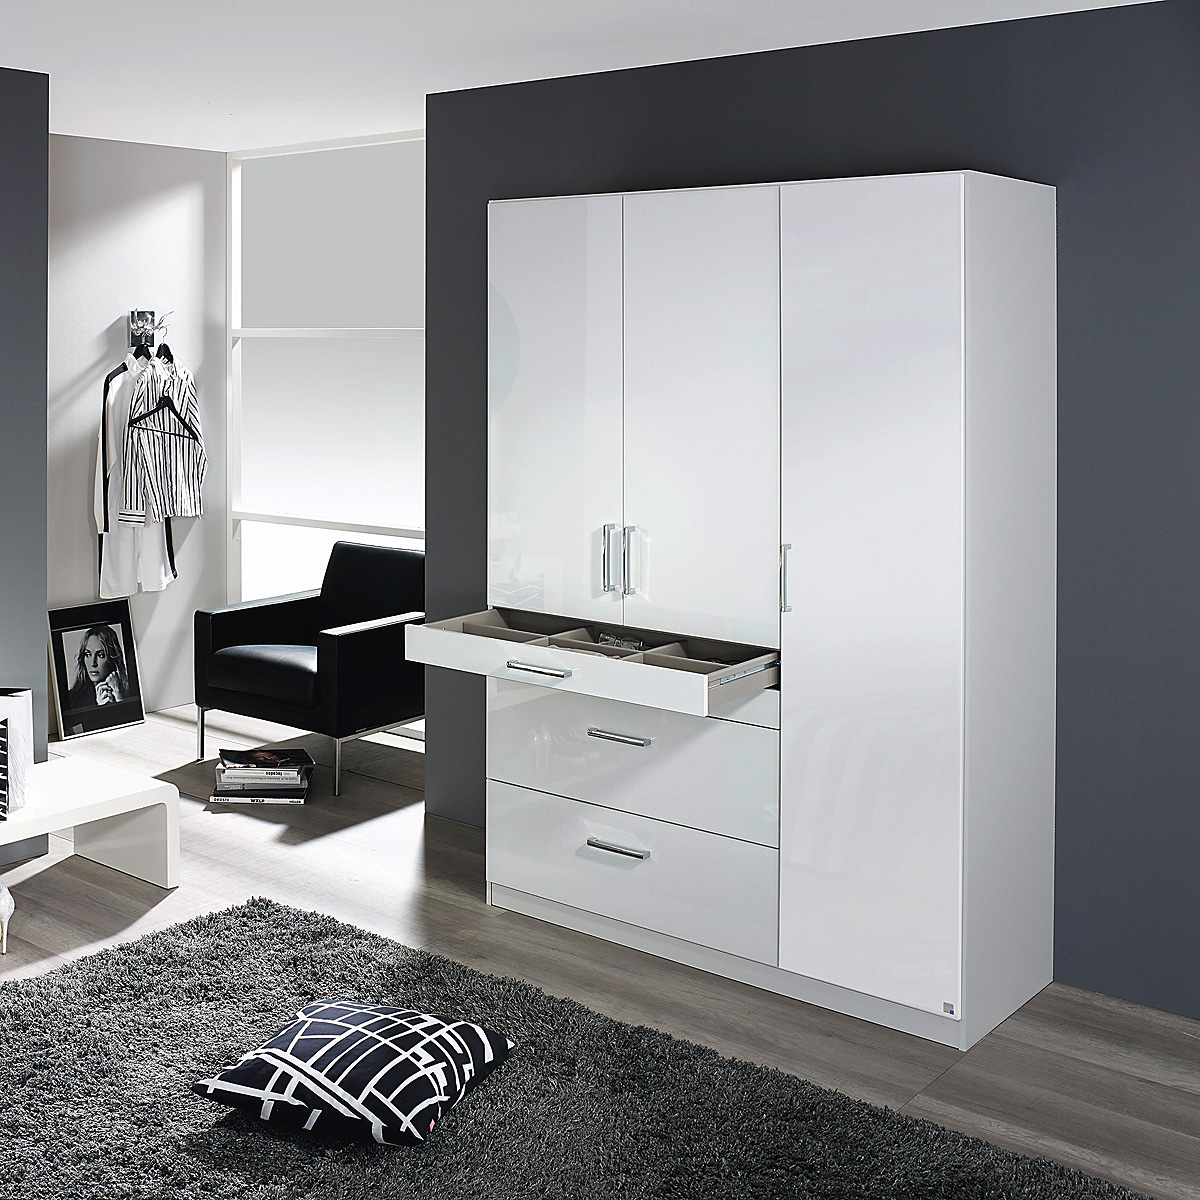 kleiderschrank homburg schrank schlafzimmerschrank in wei hochglanz auswahl ebay. Black Bedroom Furniture Sets. Home Design Ideas